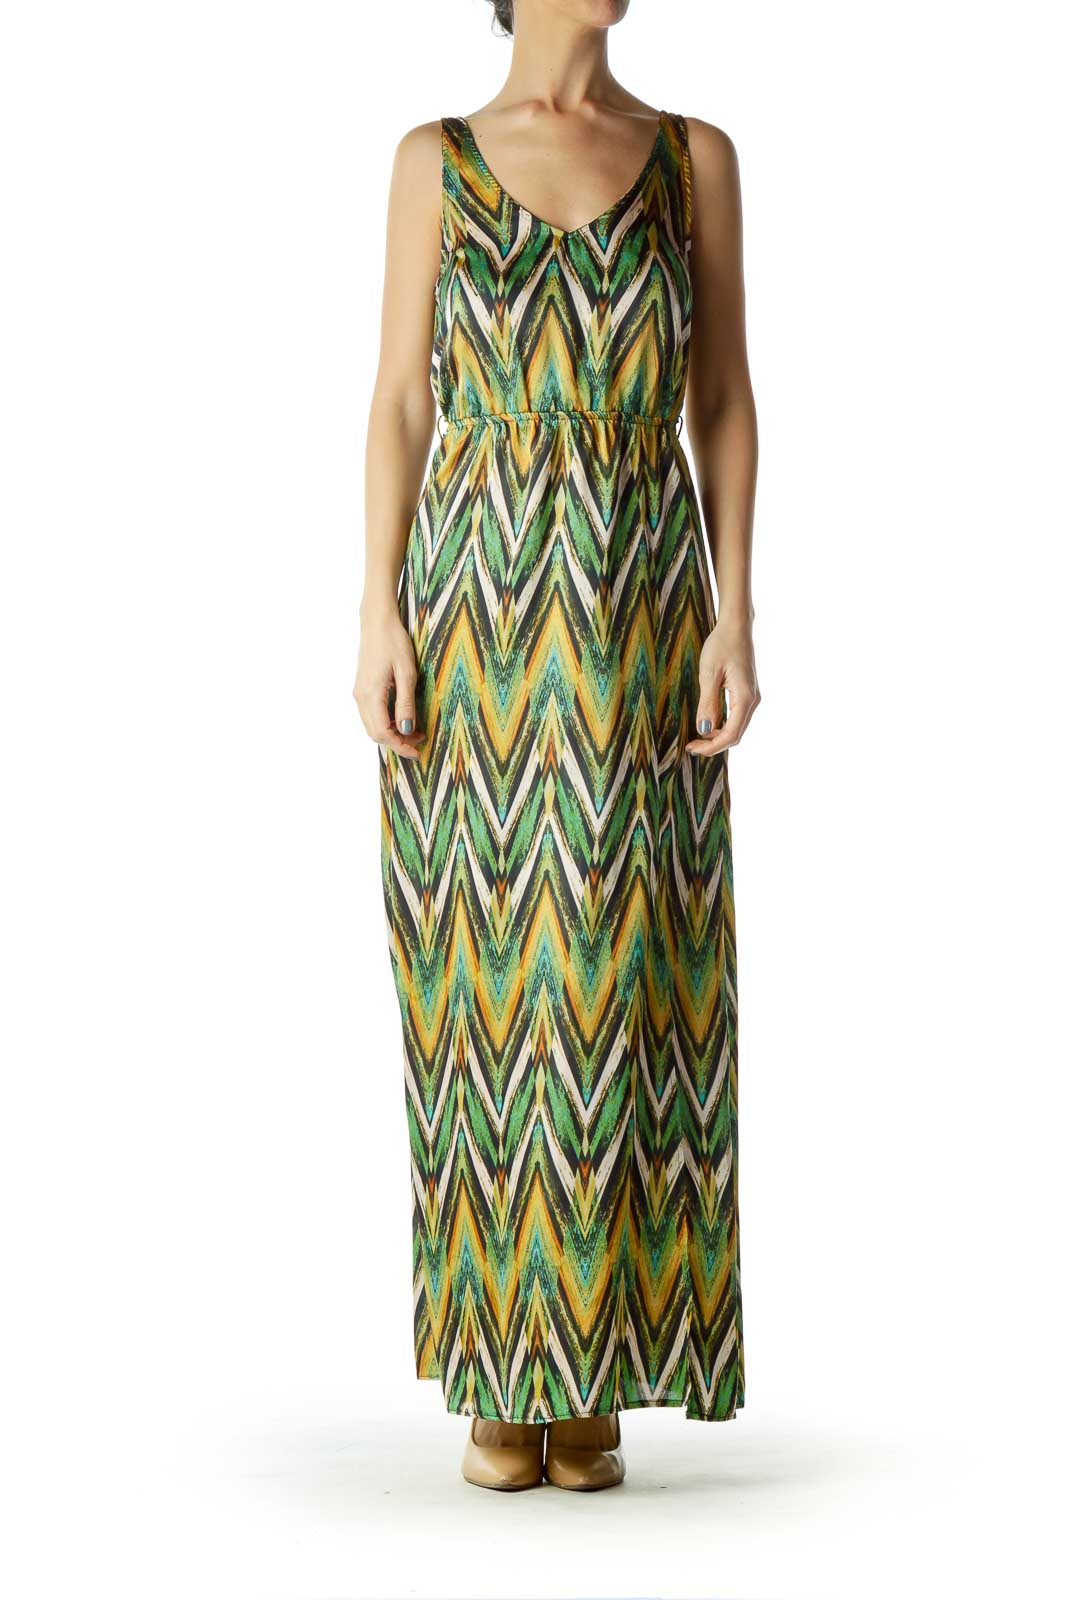 Green Beige Zig Zag Print Maxi Dress Front